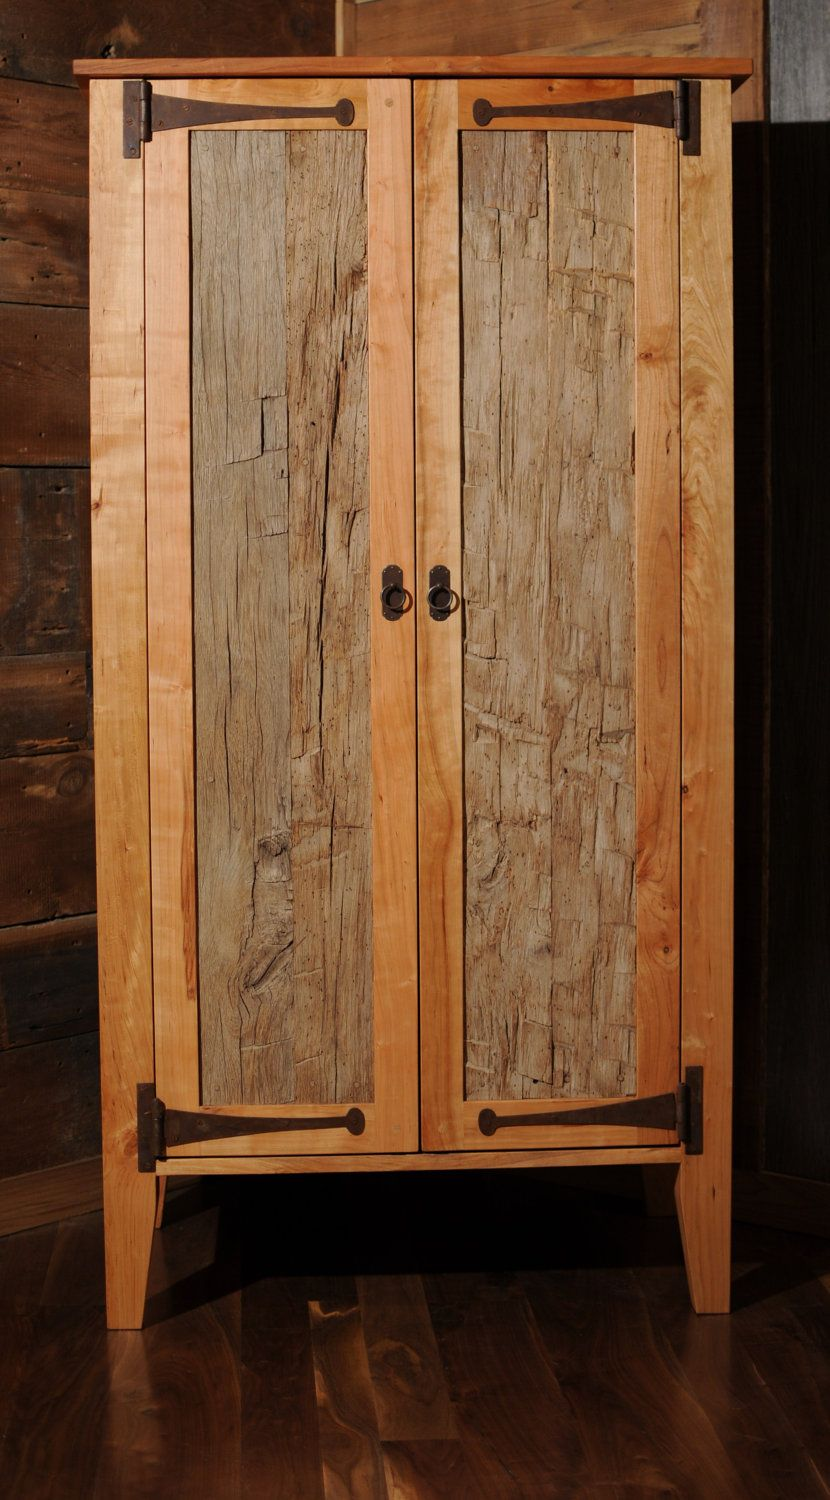 Wood Armoire Cabinet ~ Reclaimed wood armoire wardrobe closet etsy dwell on